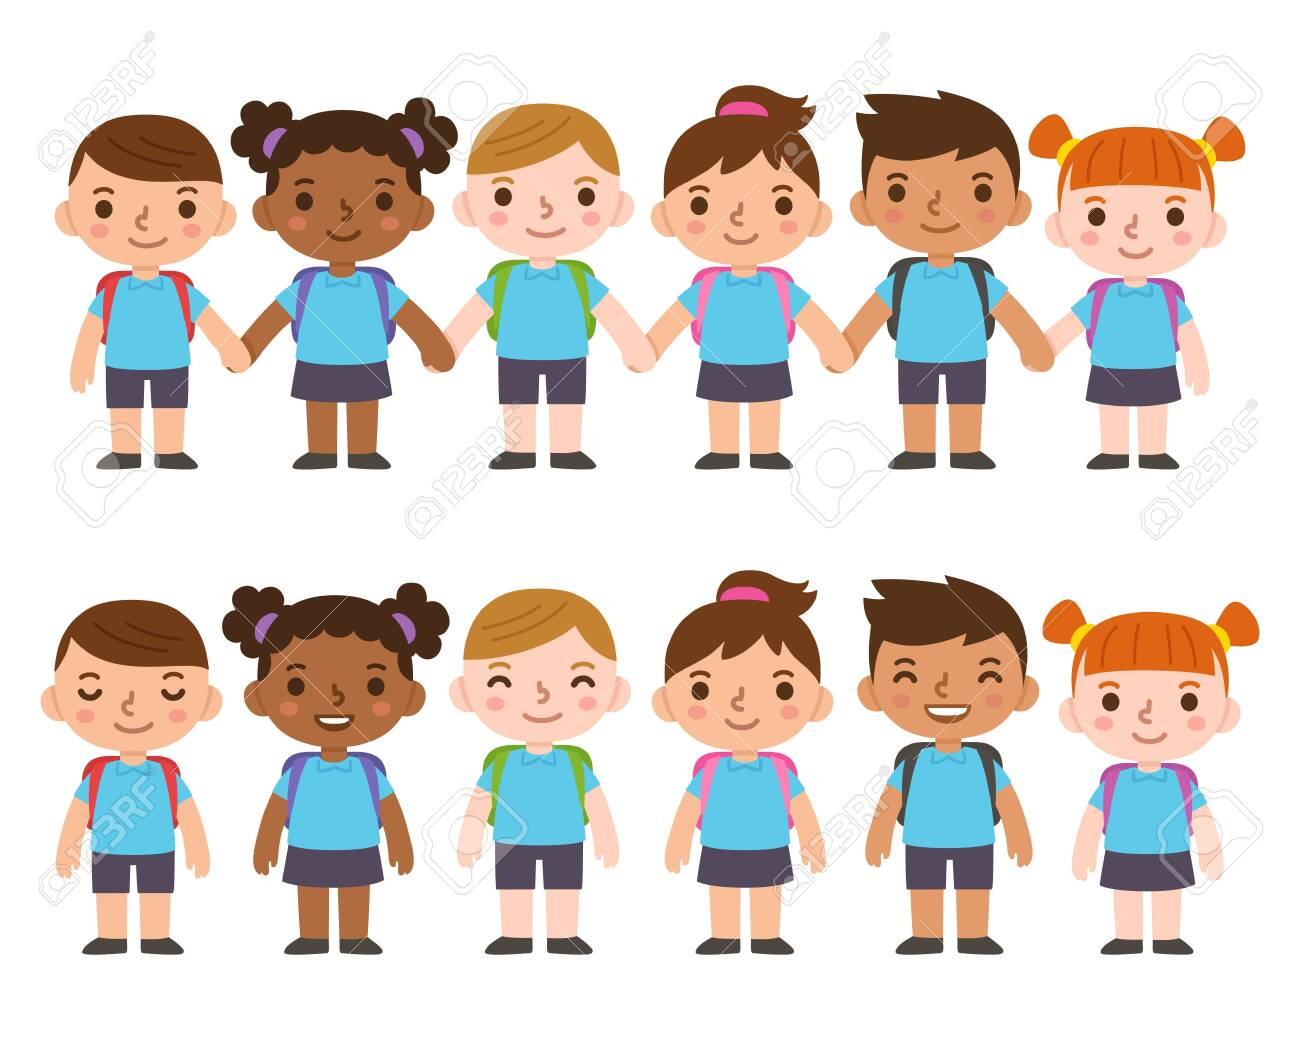 A set of six cute cartoon diverse children wearing school uniform with backpacks and holding hands. International group of kids, boys and girls. Isolated vector clip art illustration. - 141717444